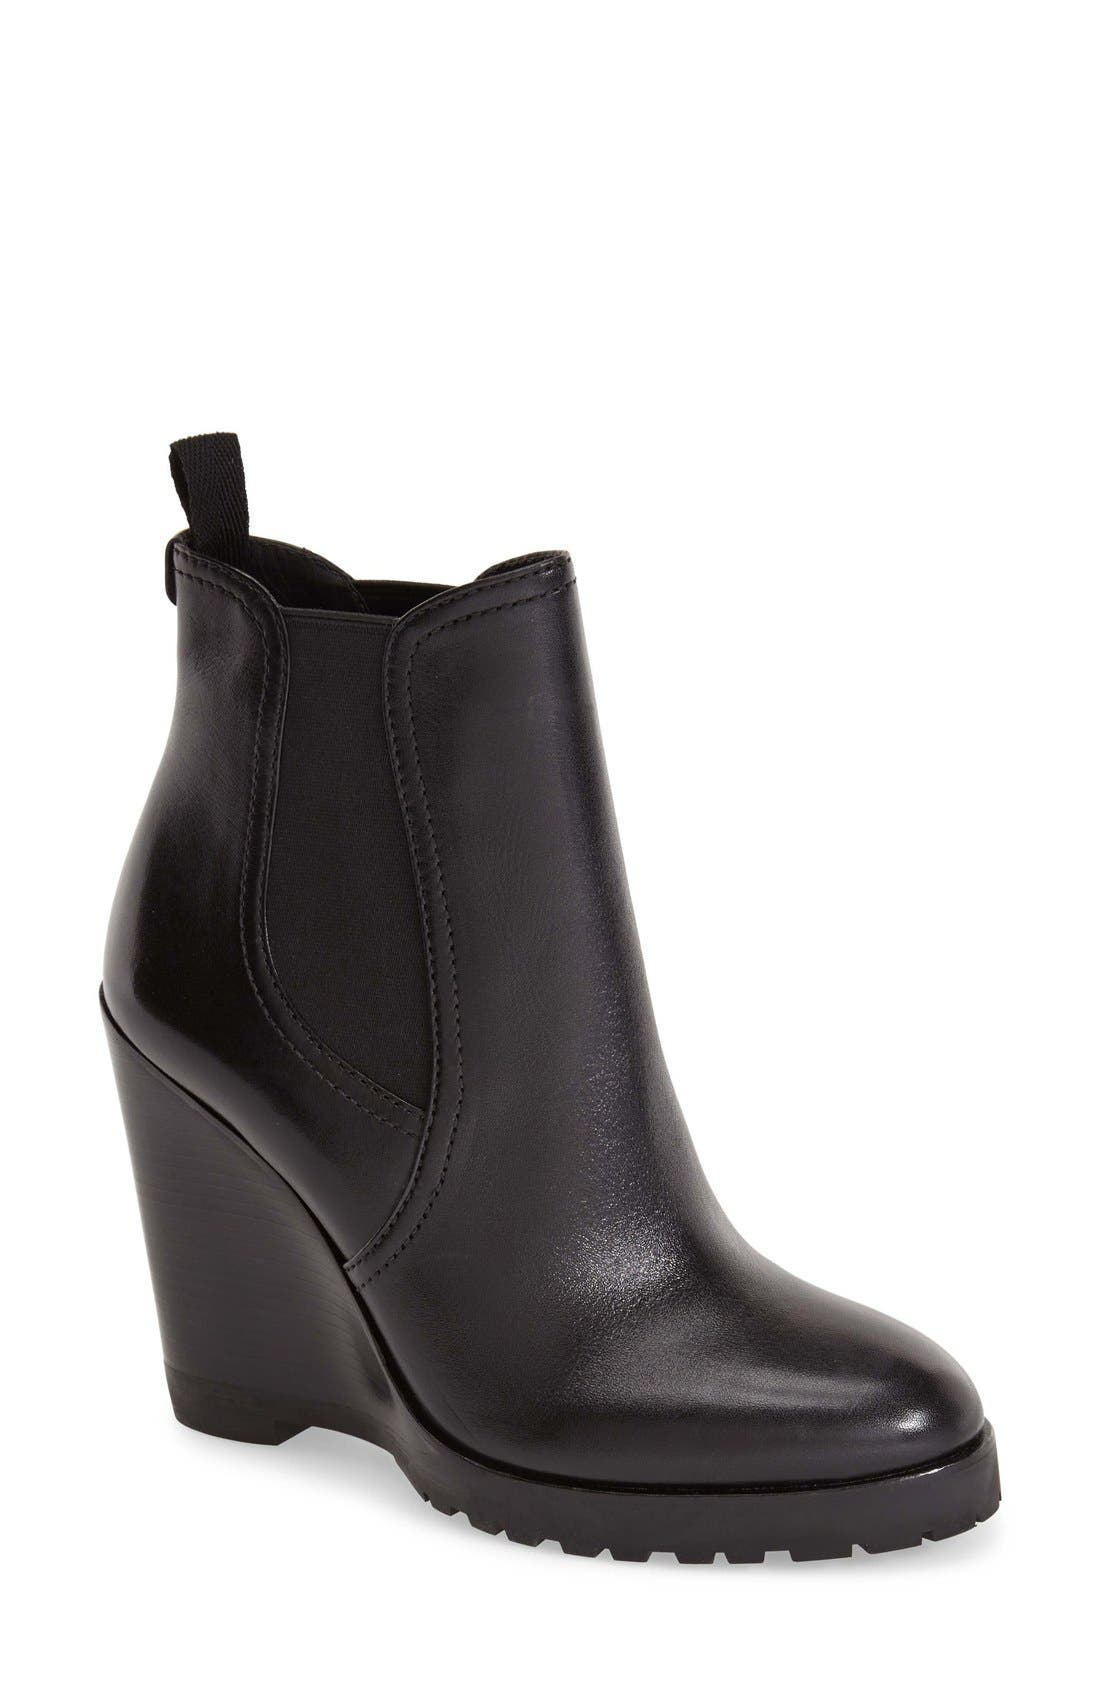 Alternate Image 1 Selected - MICHAEL Michael Kors 'Thea' Wedge Bootie (Women)